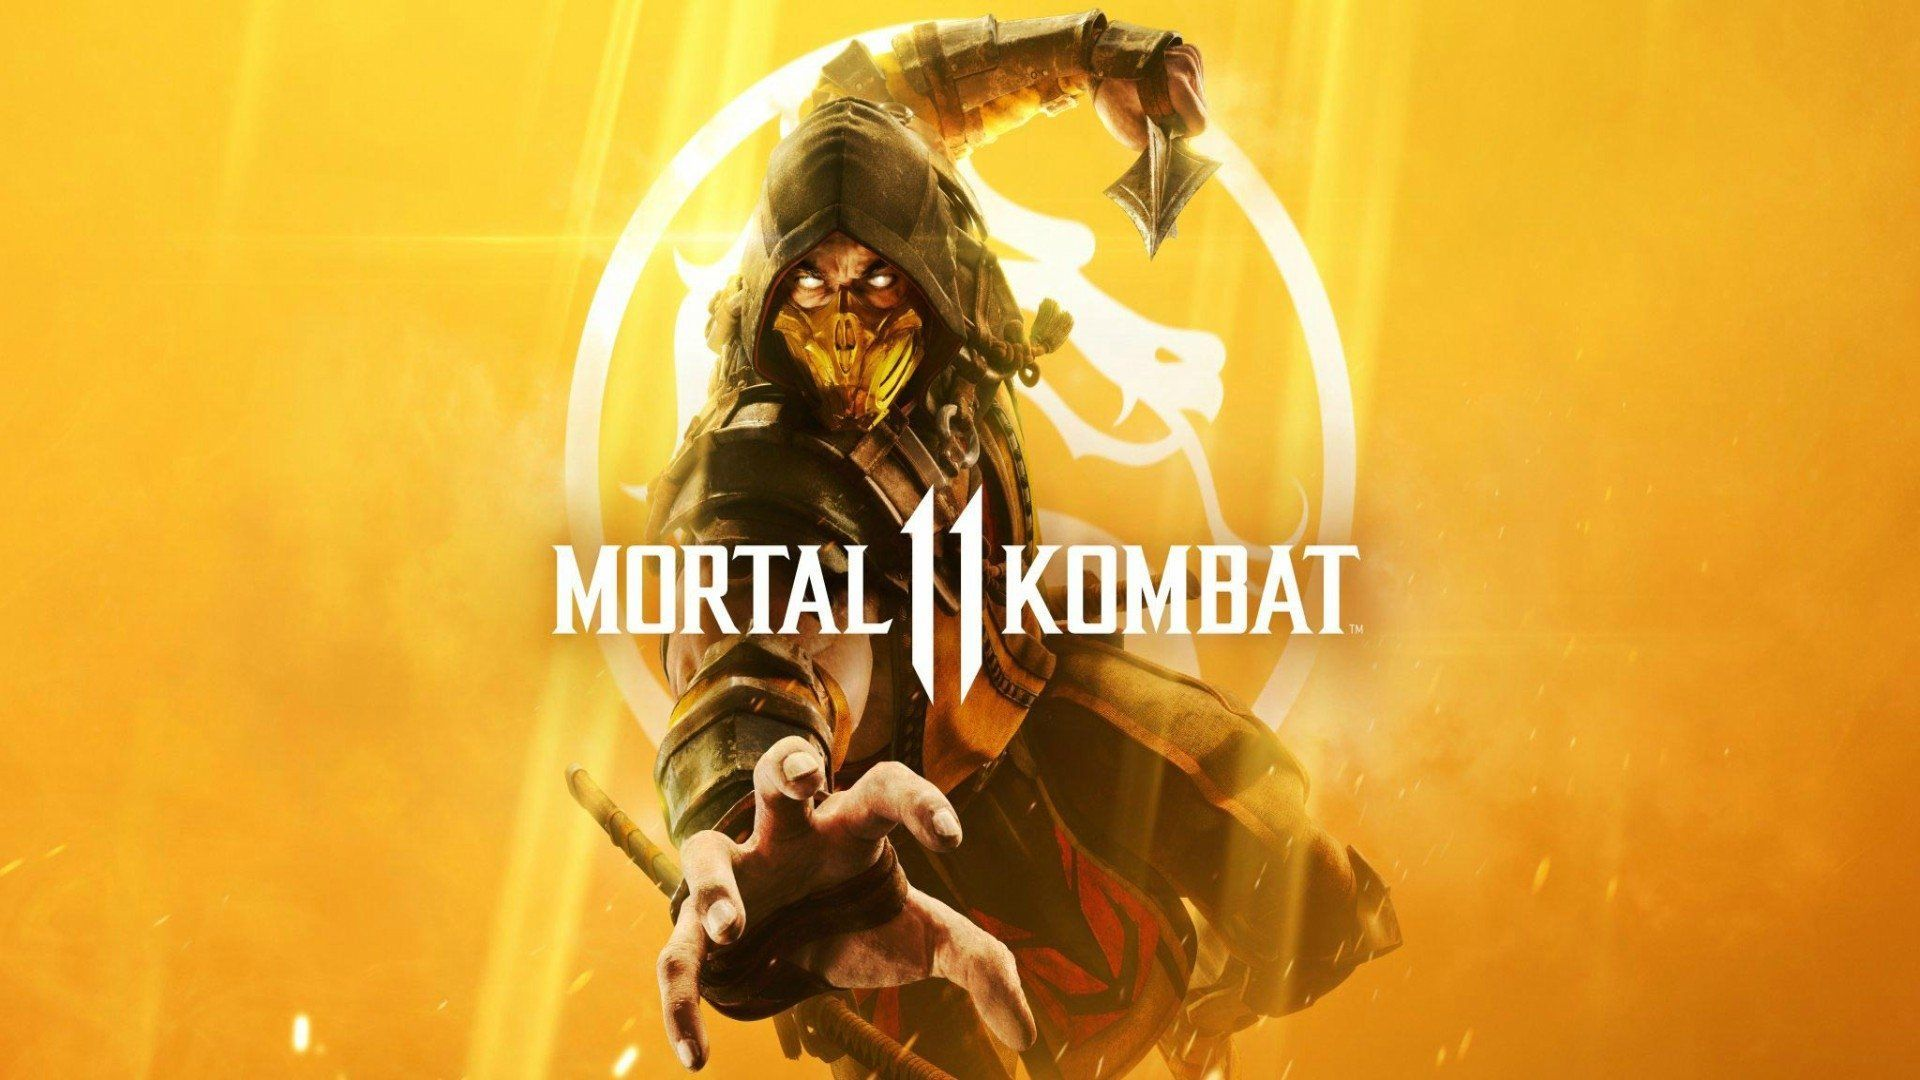 /netherrealm-studios-next-game-mortal-kombat-12-or-injustice-3-cpx37rp feature image